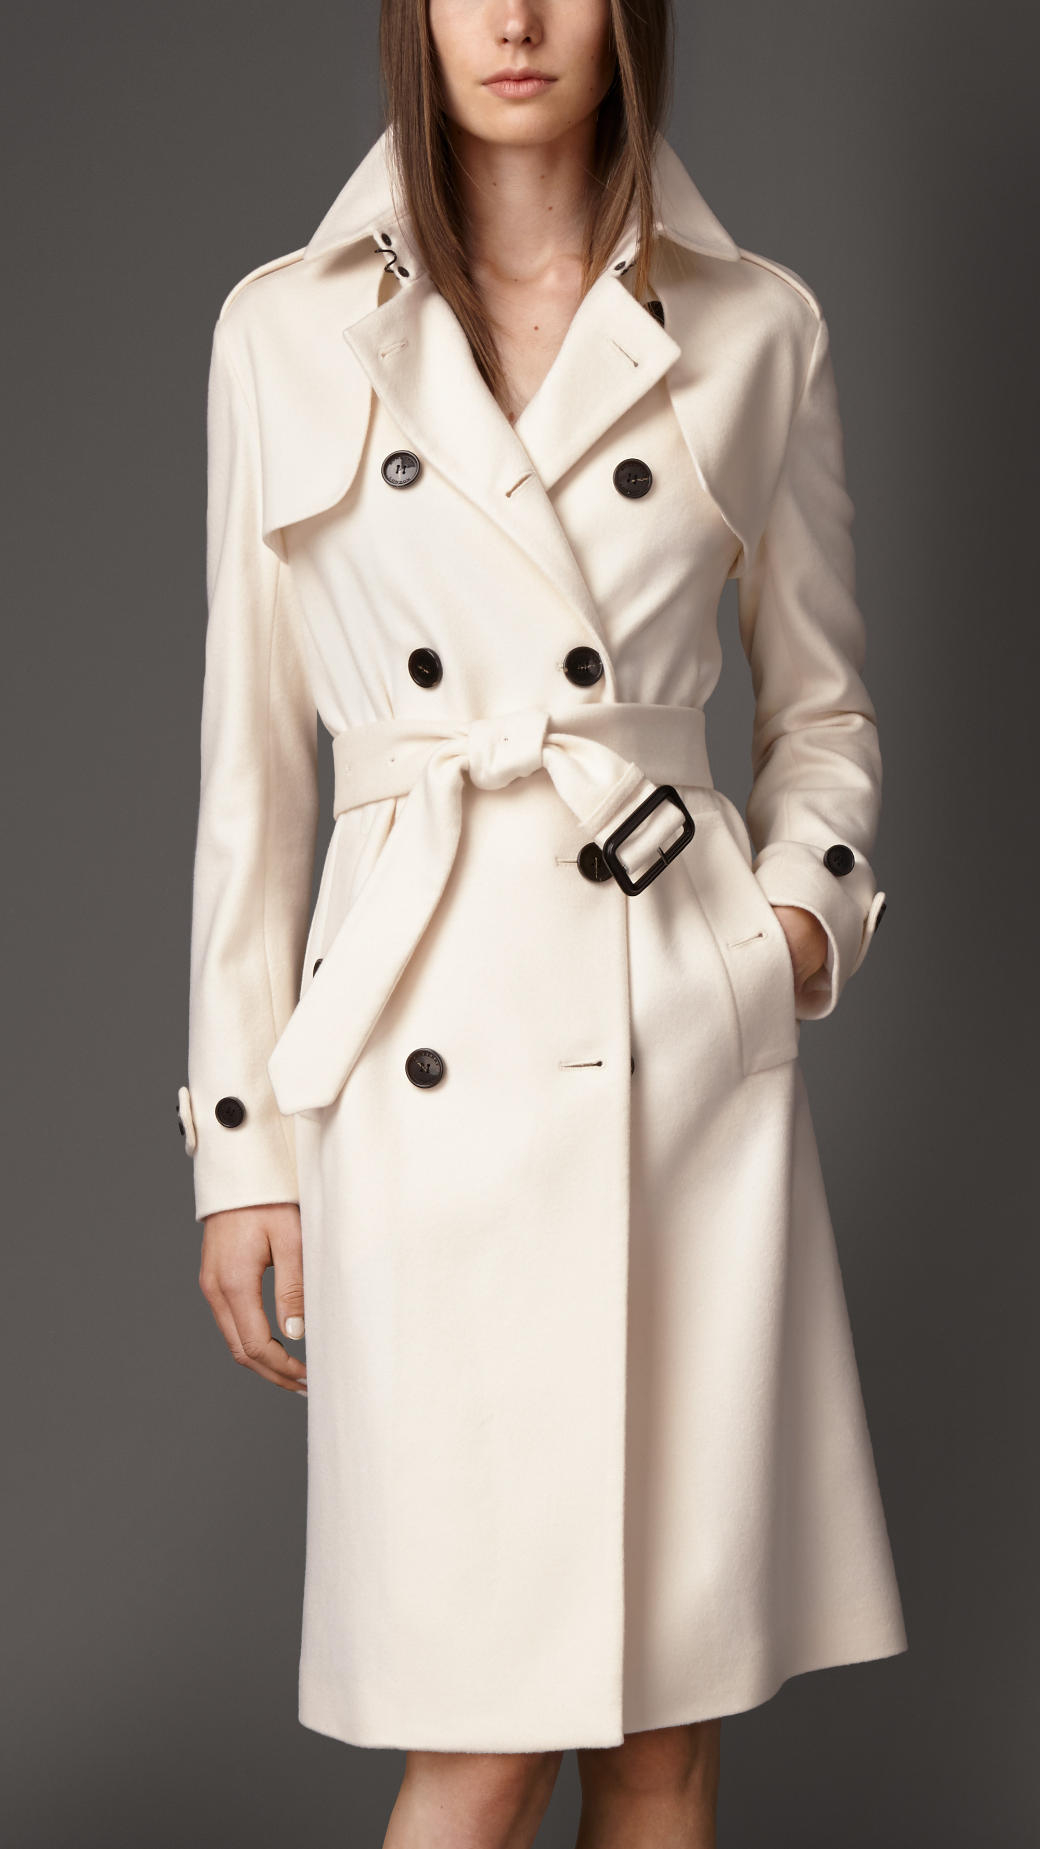 Burberry Long Double Cashmere Trench Coat in White | Lyst